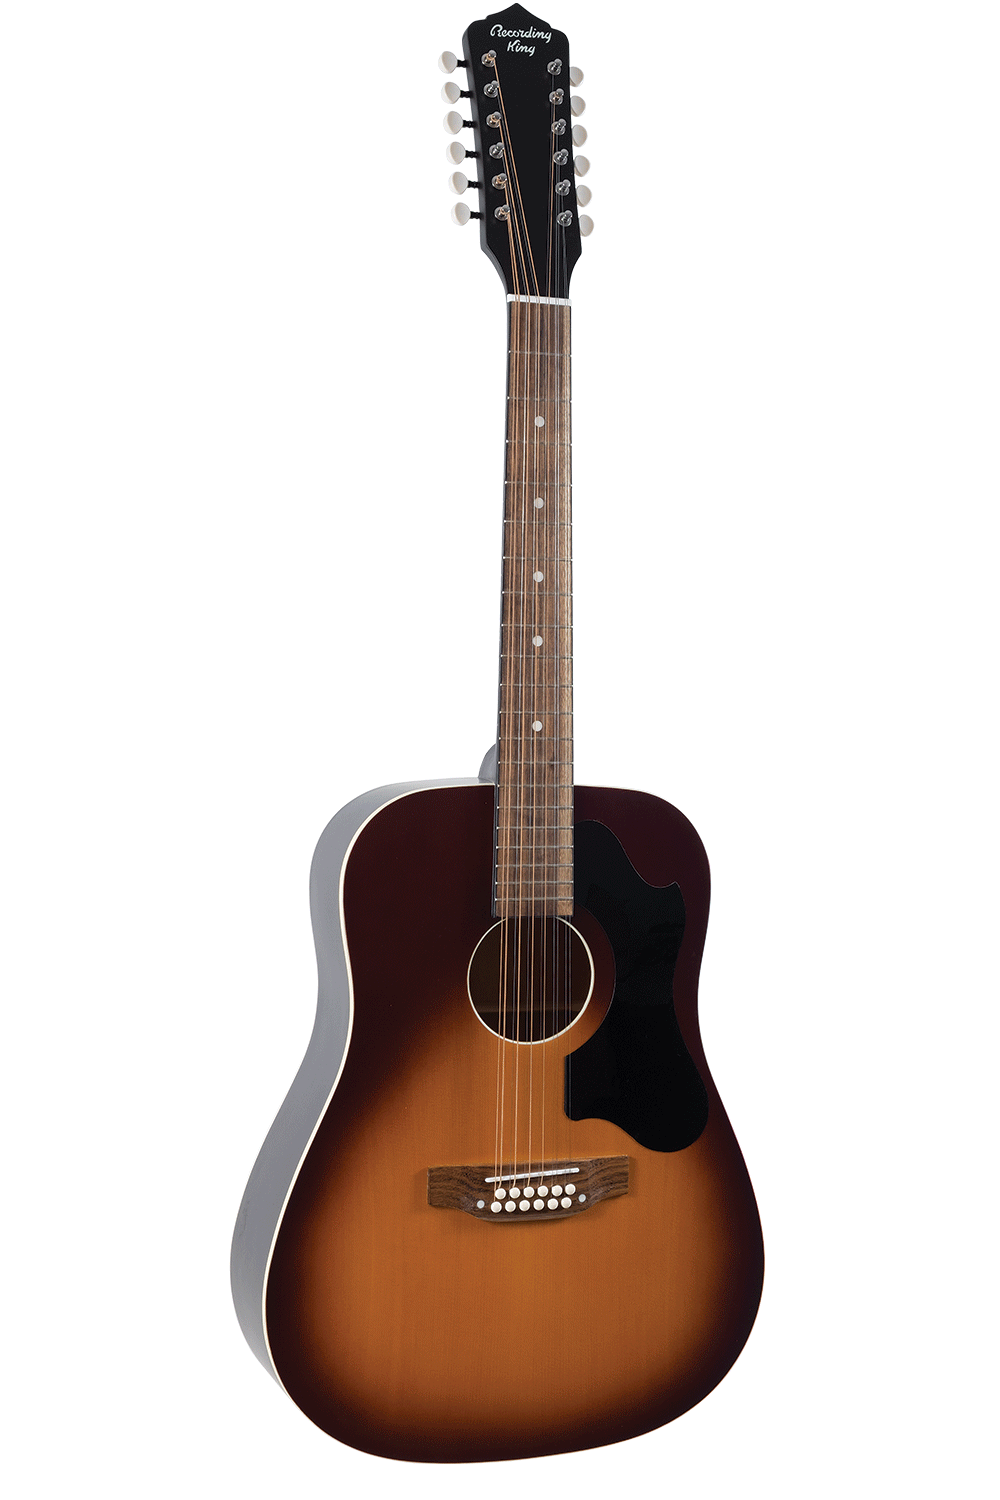 Dreadnought - 12 String